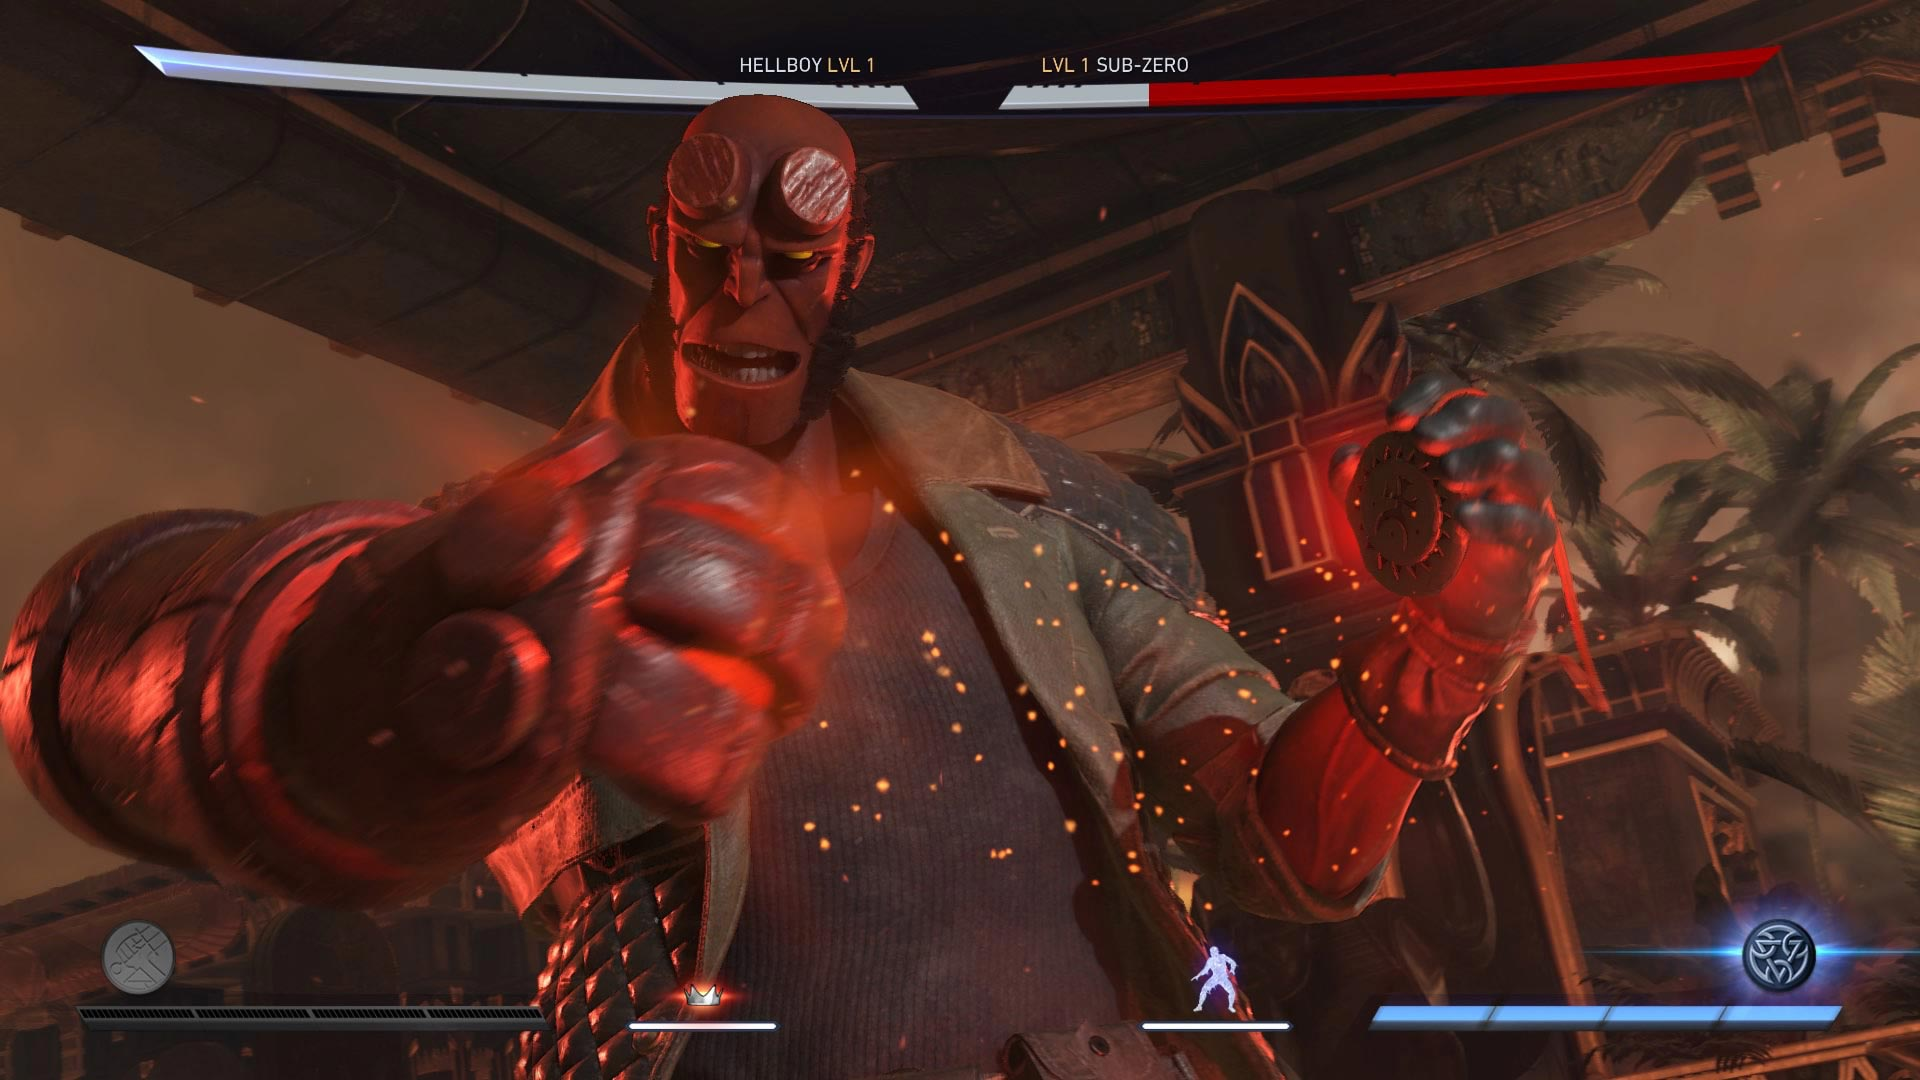 Hellboy in Injustice 2 7 out of 9 image gallery